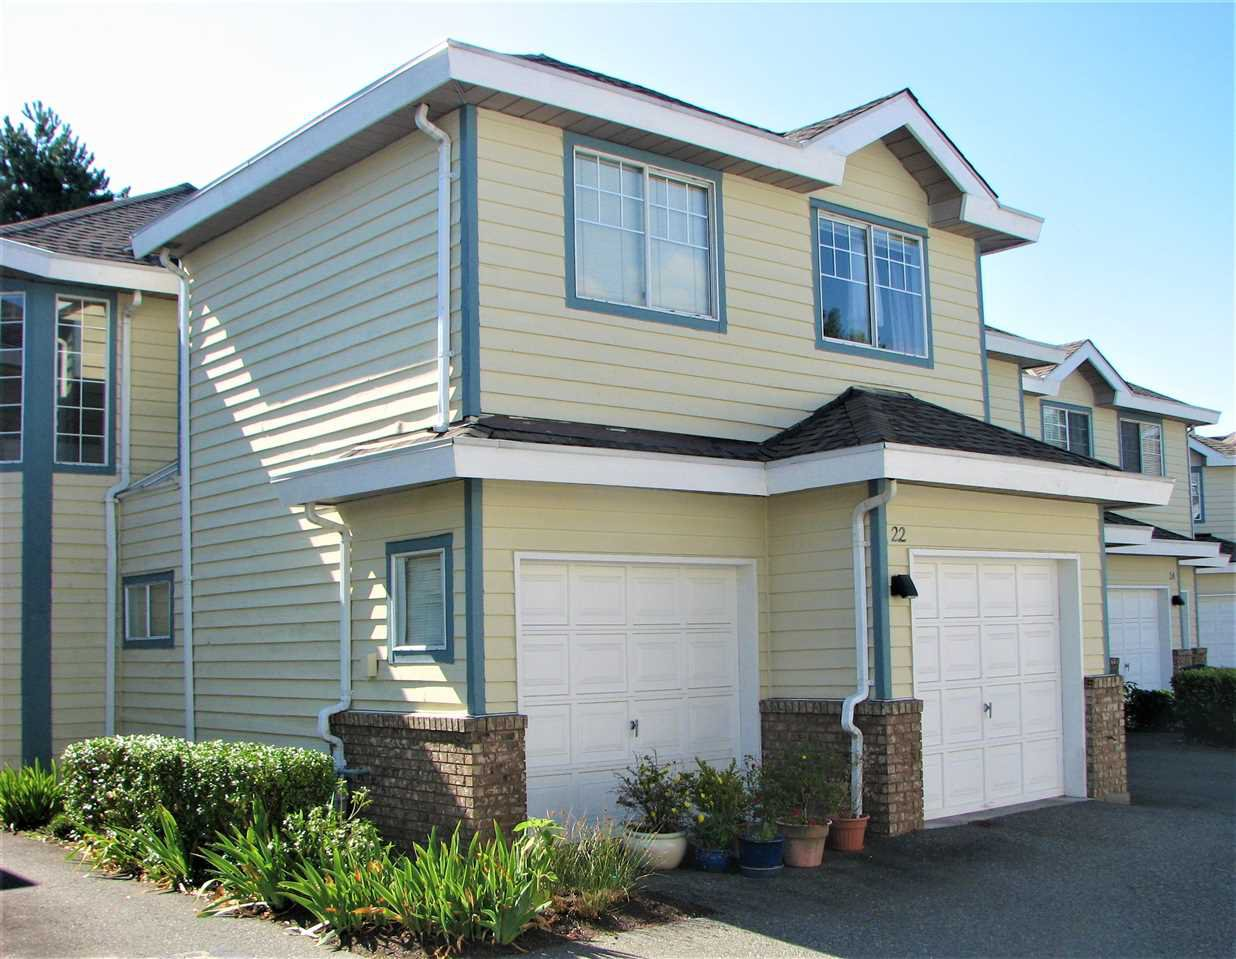 """Main Photo: 22 8551 GENERAL CURRIE Road in Richmond: Brighouse South Townhouse for sale in """"THE CRESCENT"""" : MLS®# R2387071"""